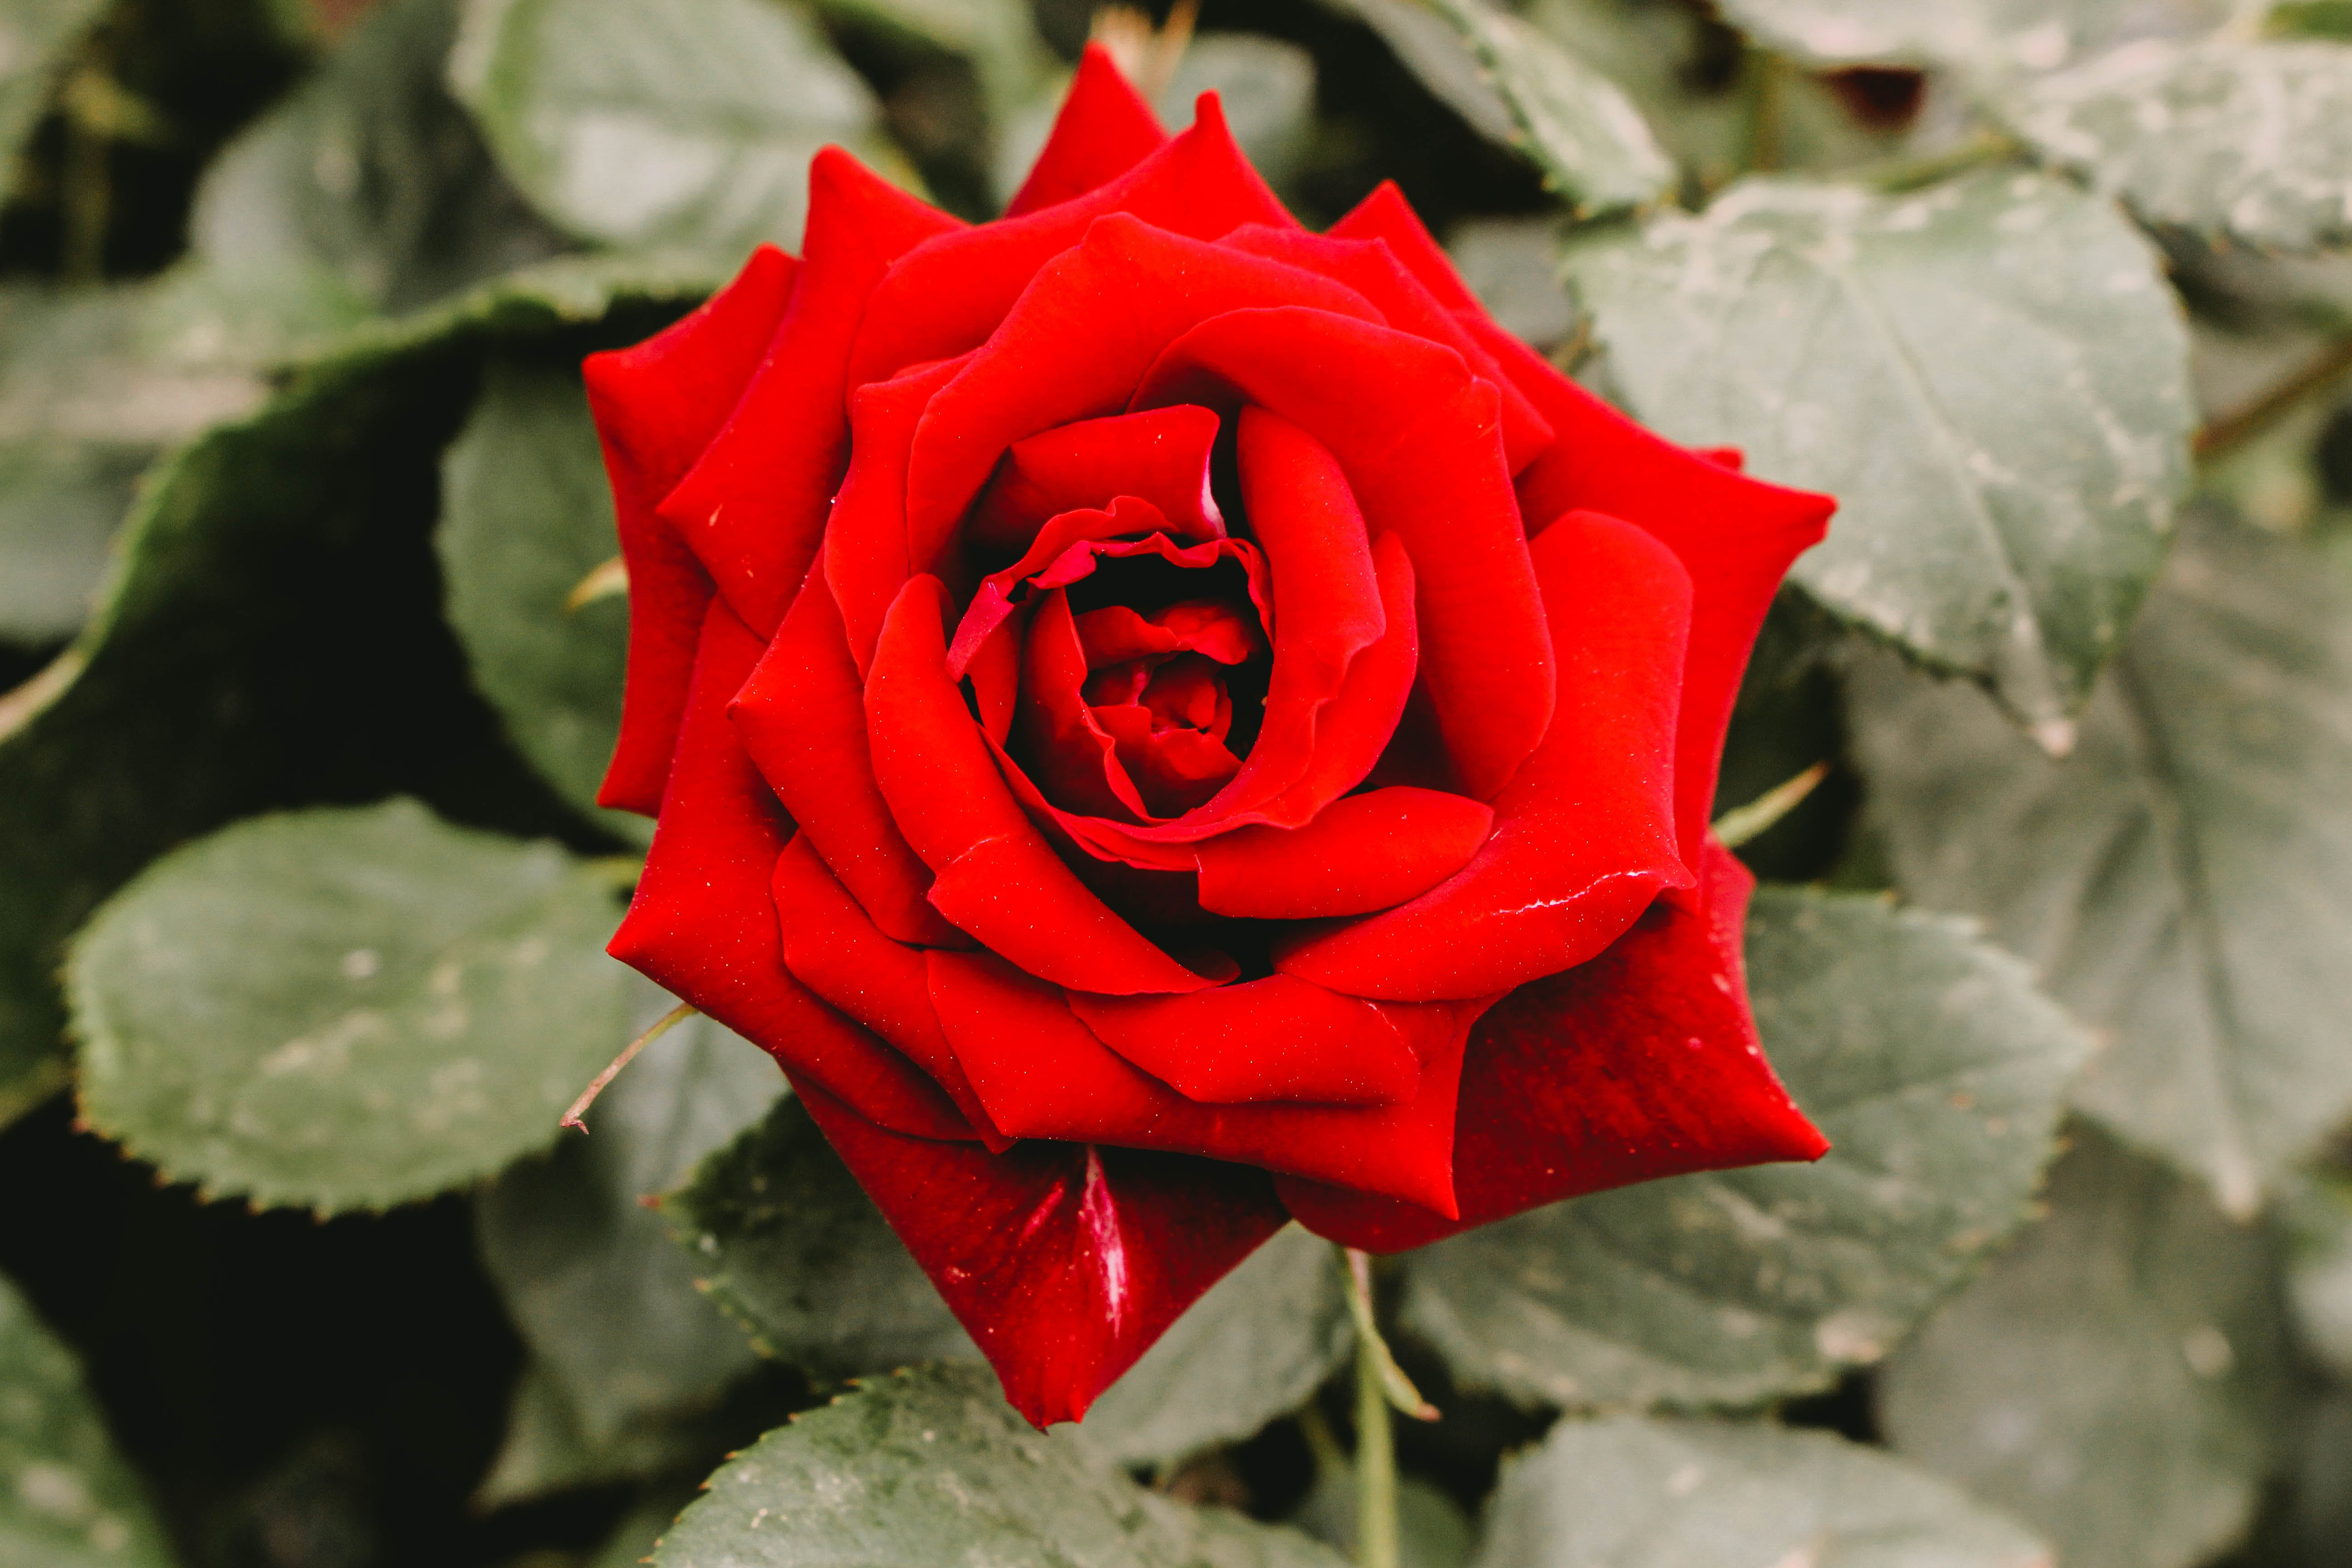 Closeup Photography of Red Rose Flower